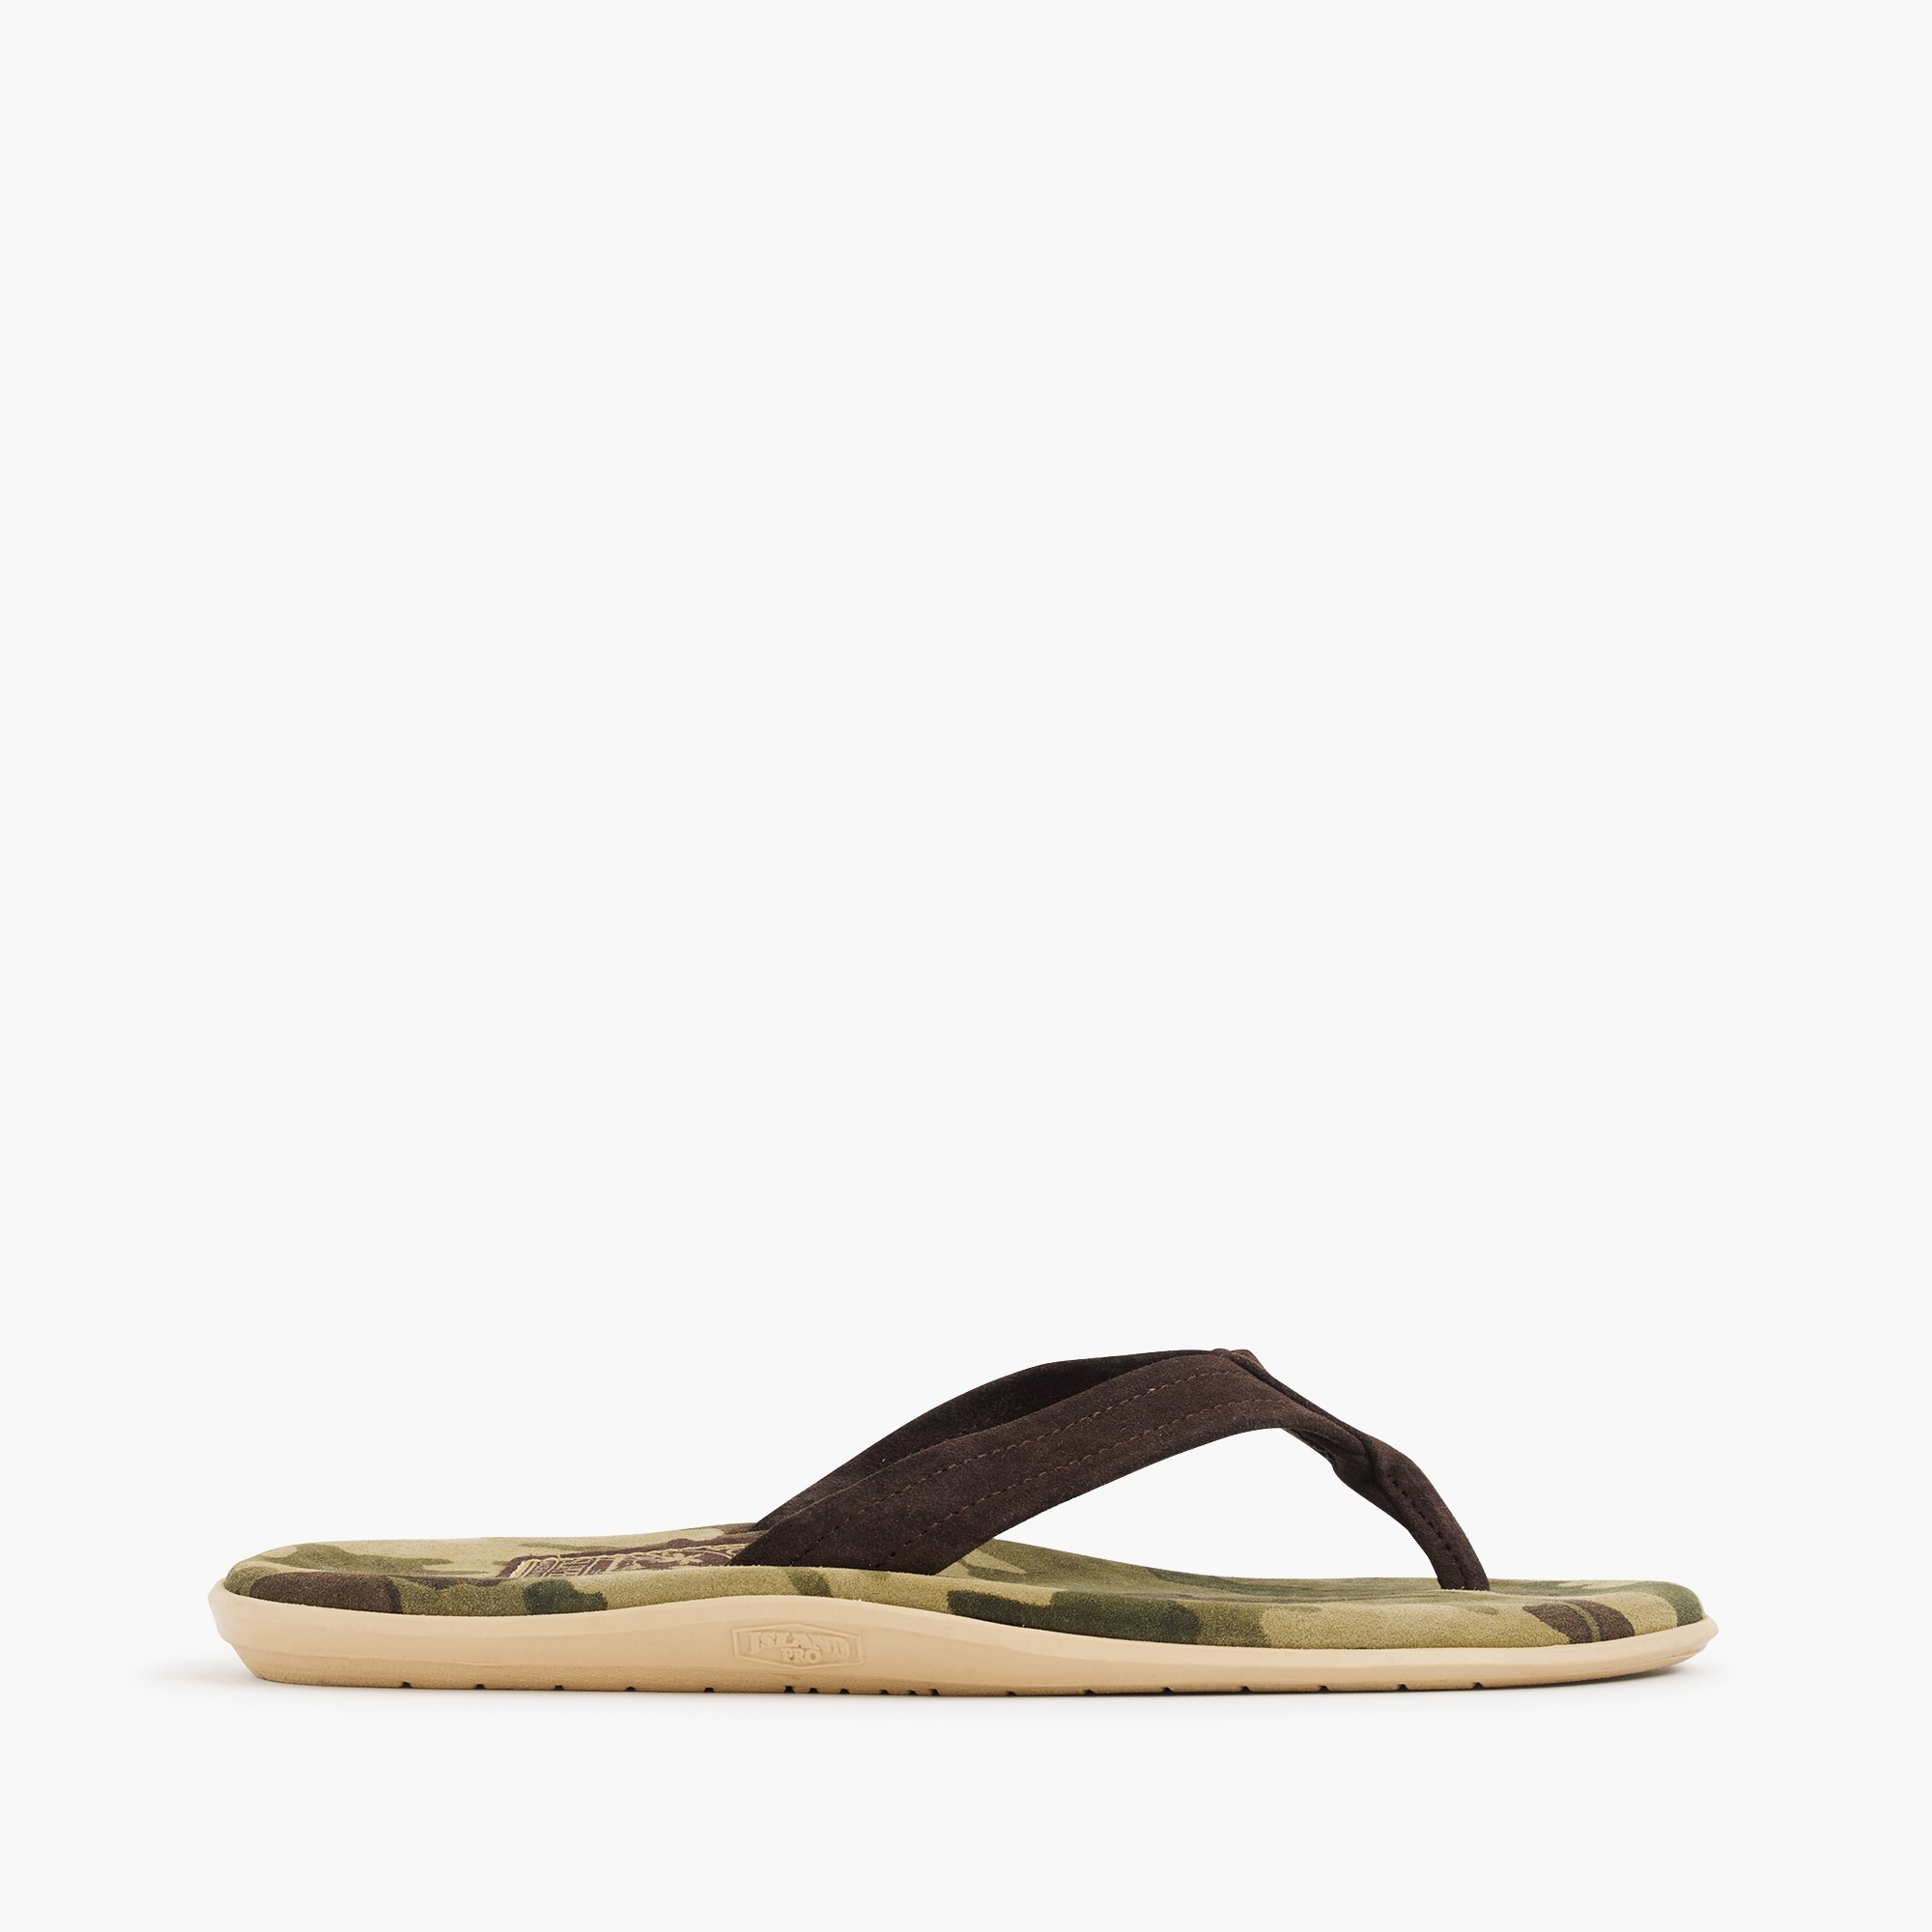 Island Slipper® flip-flops in camo